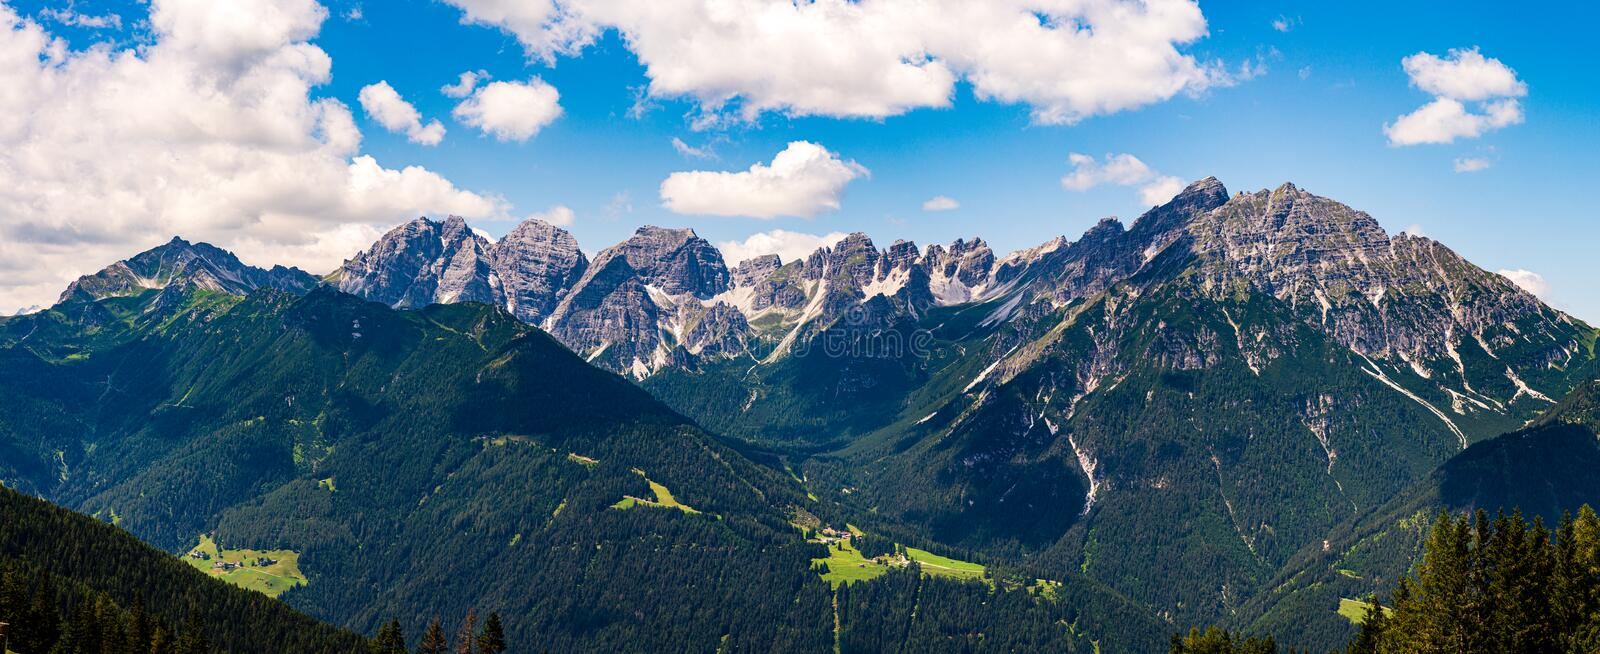 Grand landscape panorama of Serles mountain peaks. Serles mountain peaks, from the Austrian Tyrol, in the Alps, captured with a multiple shot high resolution stock photo